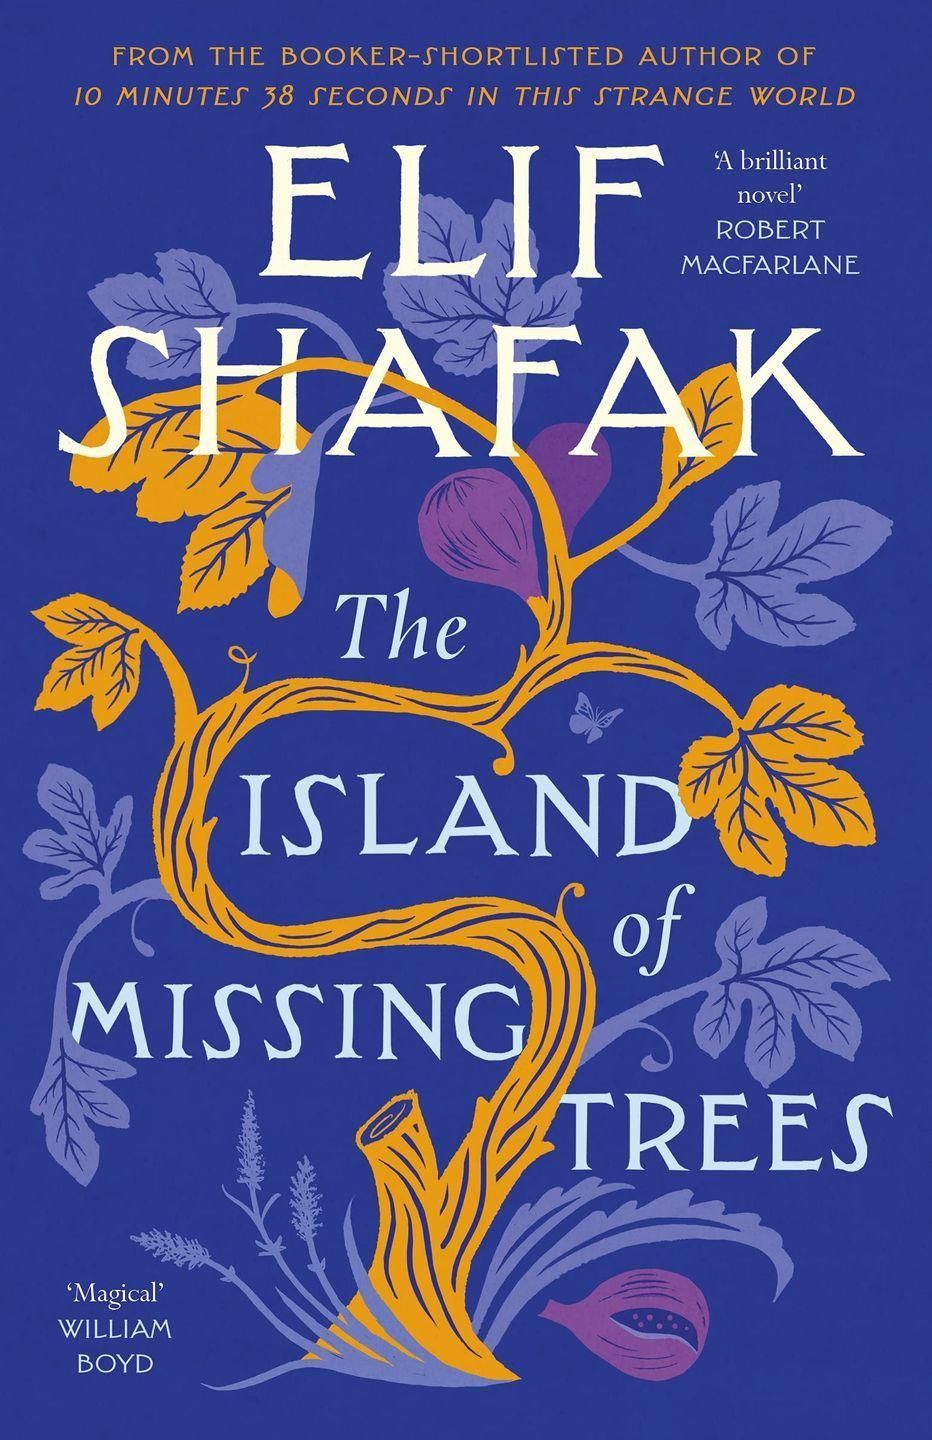 """<p>Out this August, Shafak's eagerly awaited new novel is a gorgeous tale of love and friendship, memory and home set on the island of Cyprus. Brimming with evocatively realised set pieces and a thoroughly absorbing tale within a frequently forgotten piece of world history, it is both a transportive and thought-provoking summer read.</p><p><a class=""""link rapid-noclick-resp"""" href=""""https://www.amazon.co.uk/Island-Missing-Trees-Elif-Shafak/dp/0241434998/ref=sr_1_1?crid=3CCN6432HWXE2&dchild=1&keywords=the+island+of+missing+trees&qid=1623341929&s=books&sprefix=the+island+of+%2Cstripbooks%2C146&sr=1-1&tag=hearstuk-yahoo-21&ascsubtag=%5Bartid%7C1927.g.36697675%5Bsrc%7Cyahoo-uk"""" rel=""""nofollow noopener"""" target=""""_blank"""" data-ylk=""""slk:SHOP NOW"""">SHOP NOW</a></p>"""